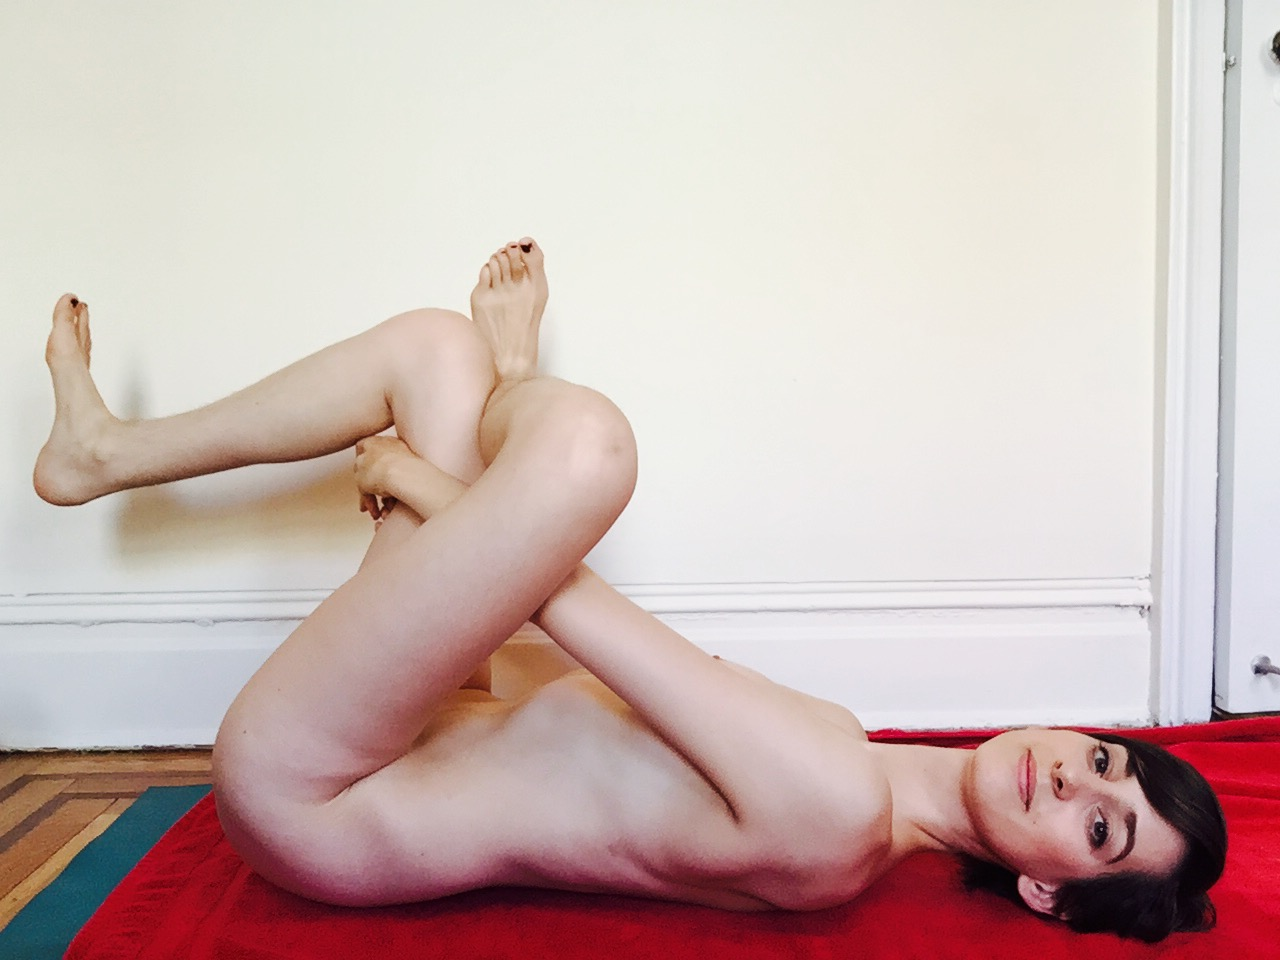 Eye of the Needle Pose,Sucirandhrasana, helps me stretch out my outer hips.